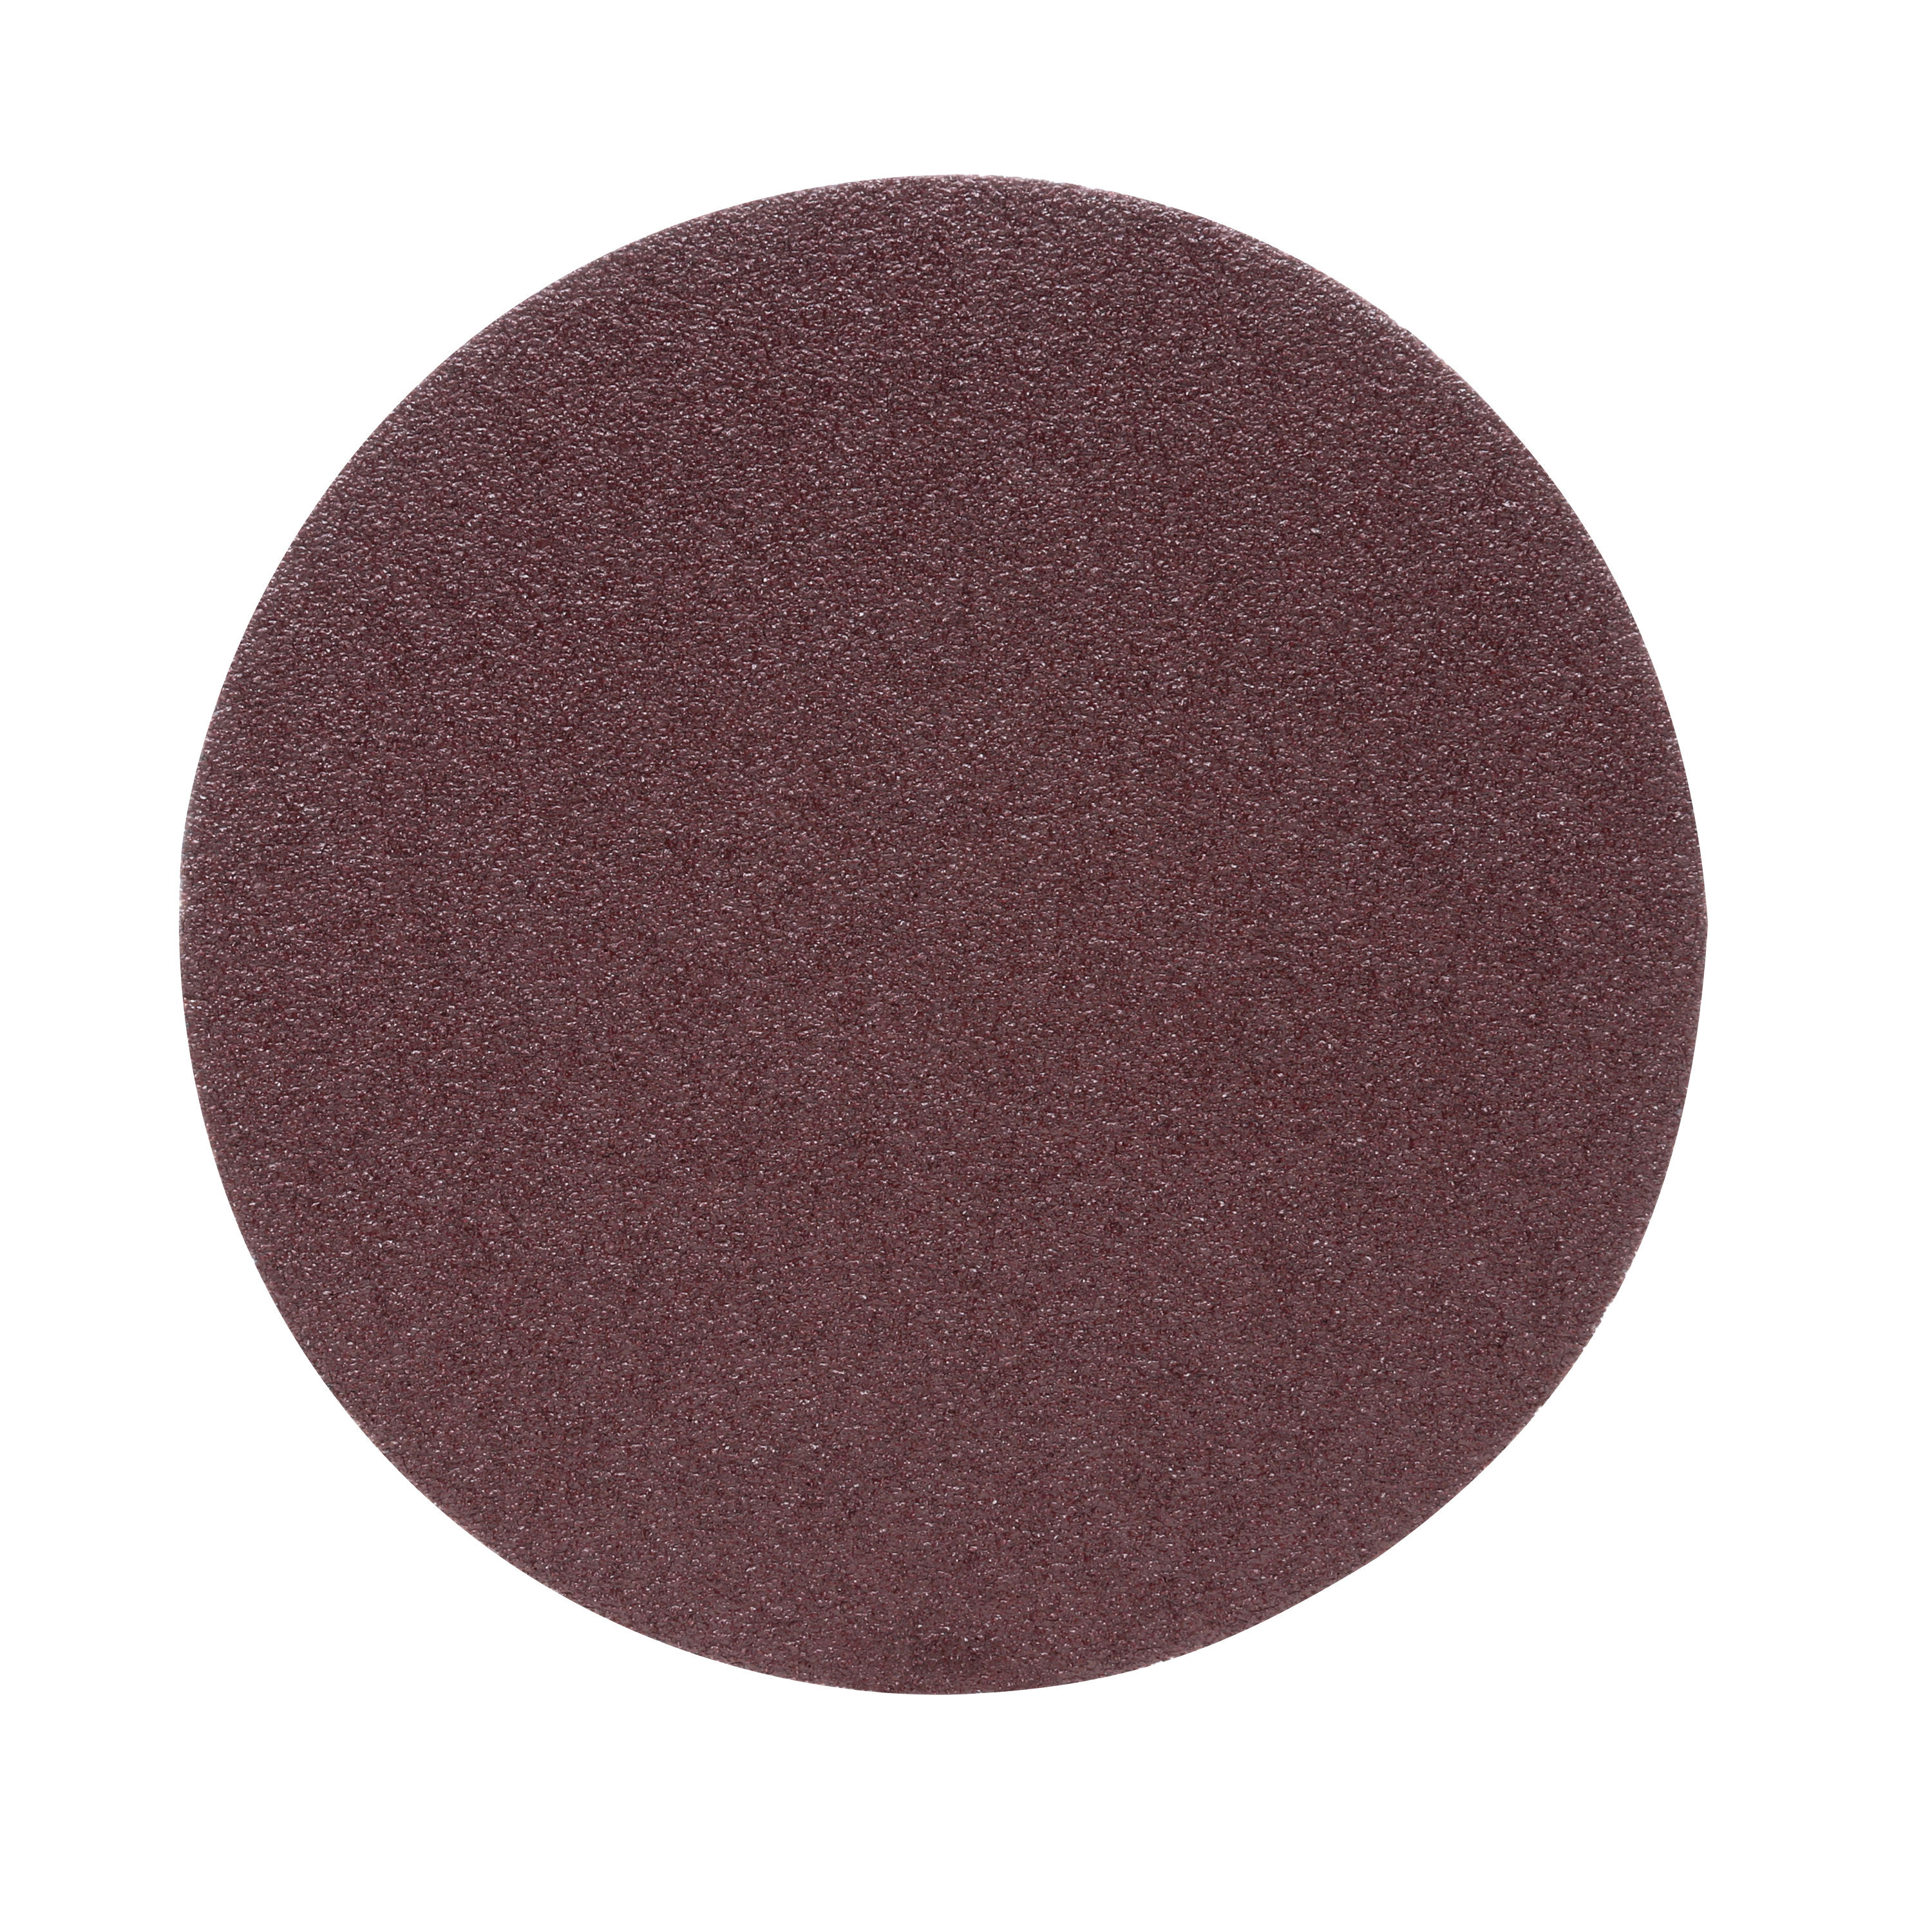 3M™ 051144-20873 Heavy Duty PSA Close Coated Abrasive Disc, 8 in Dia, 40 Grit, Coarse Grade, Aluminum Oxide Abrasive, Cloth Backing